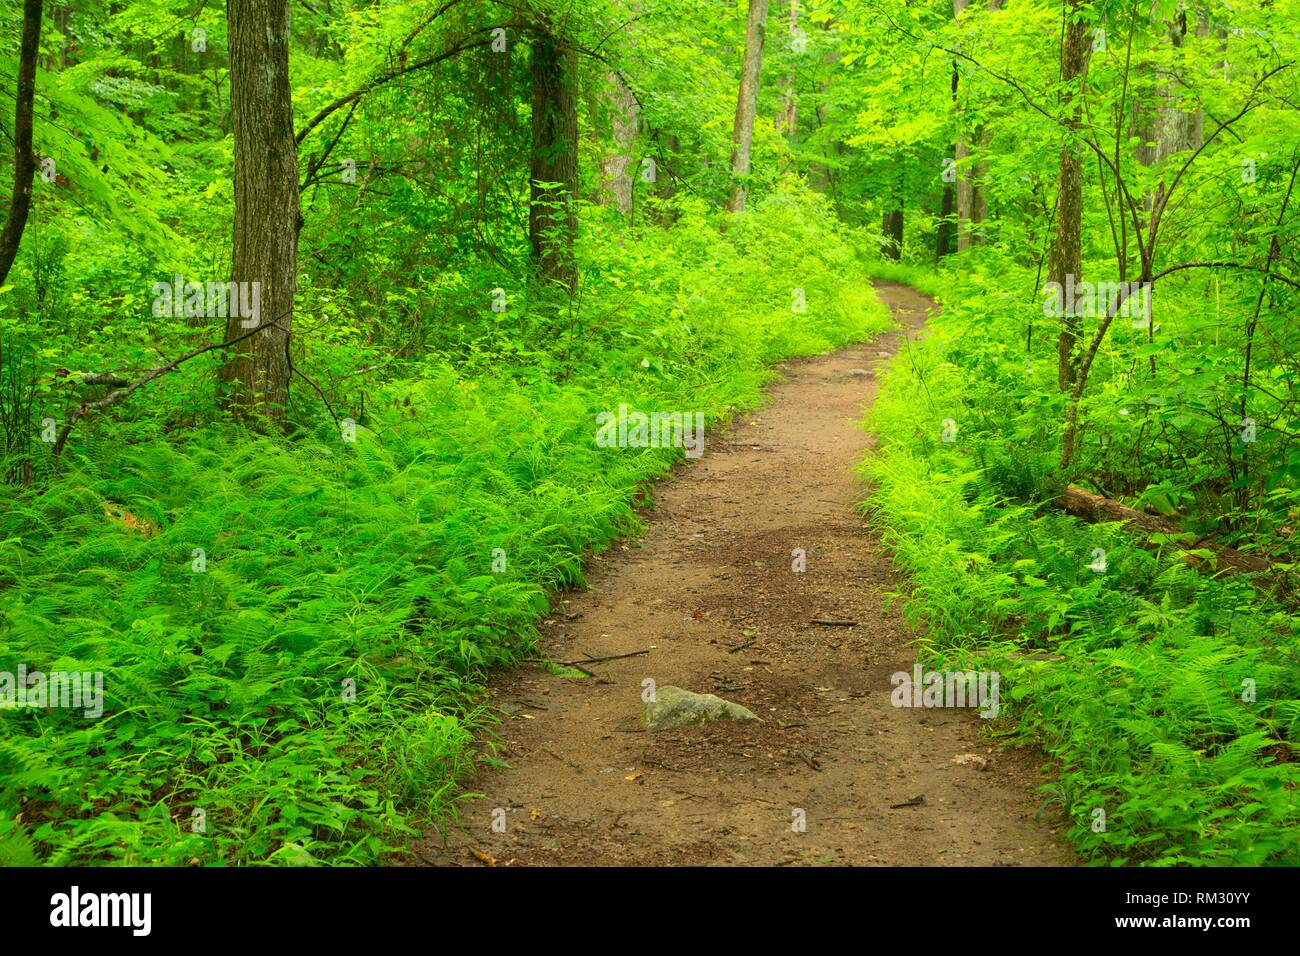 Laurel Trail, Teufel den Bewahren, Connecticut. Stockfoto